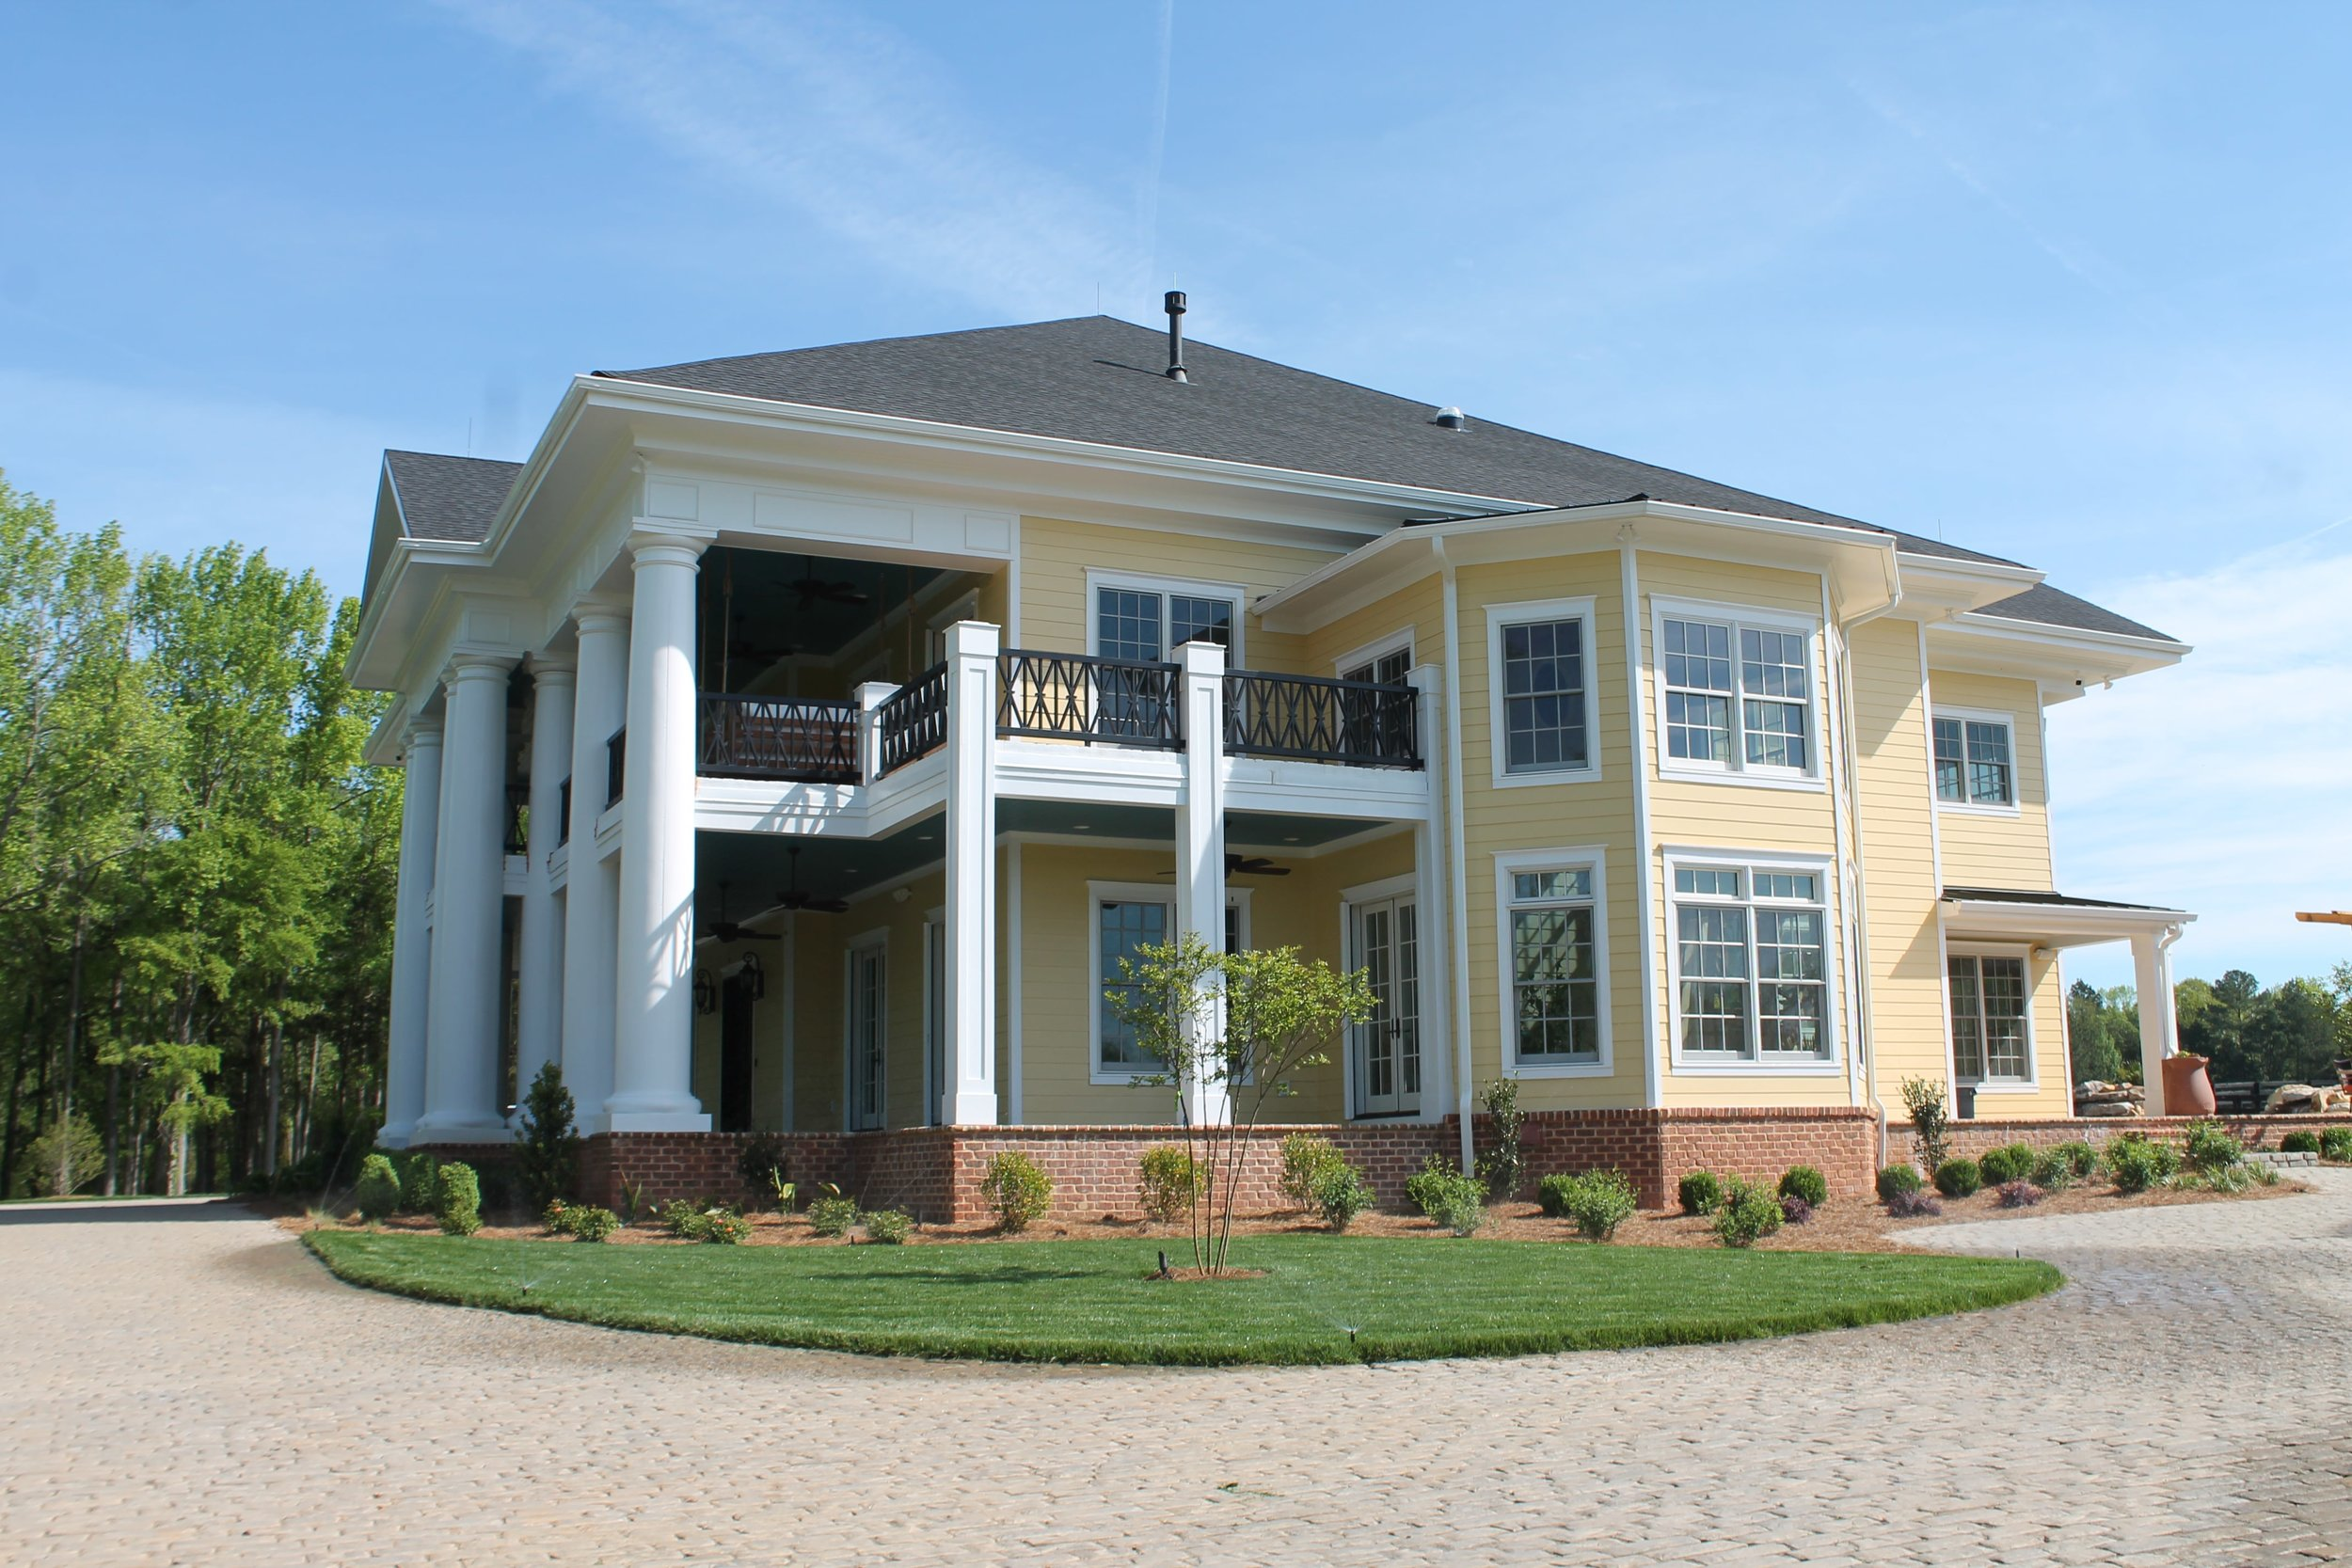 Beautiful southern estate on large acreage in South Carolina.  Double front porches with brick pavers enhance the beauty of this masterpiece.